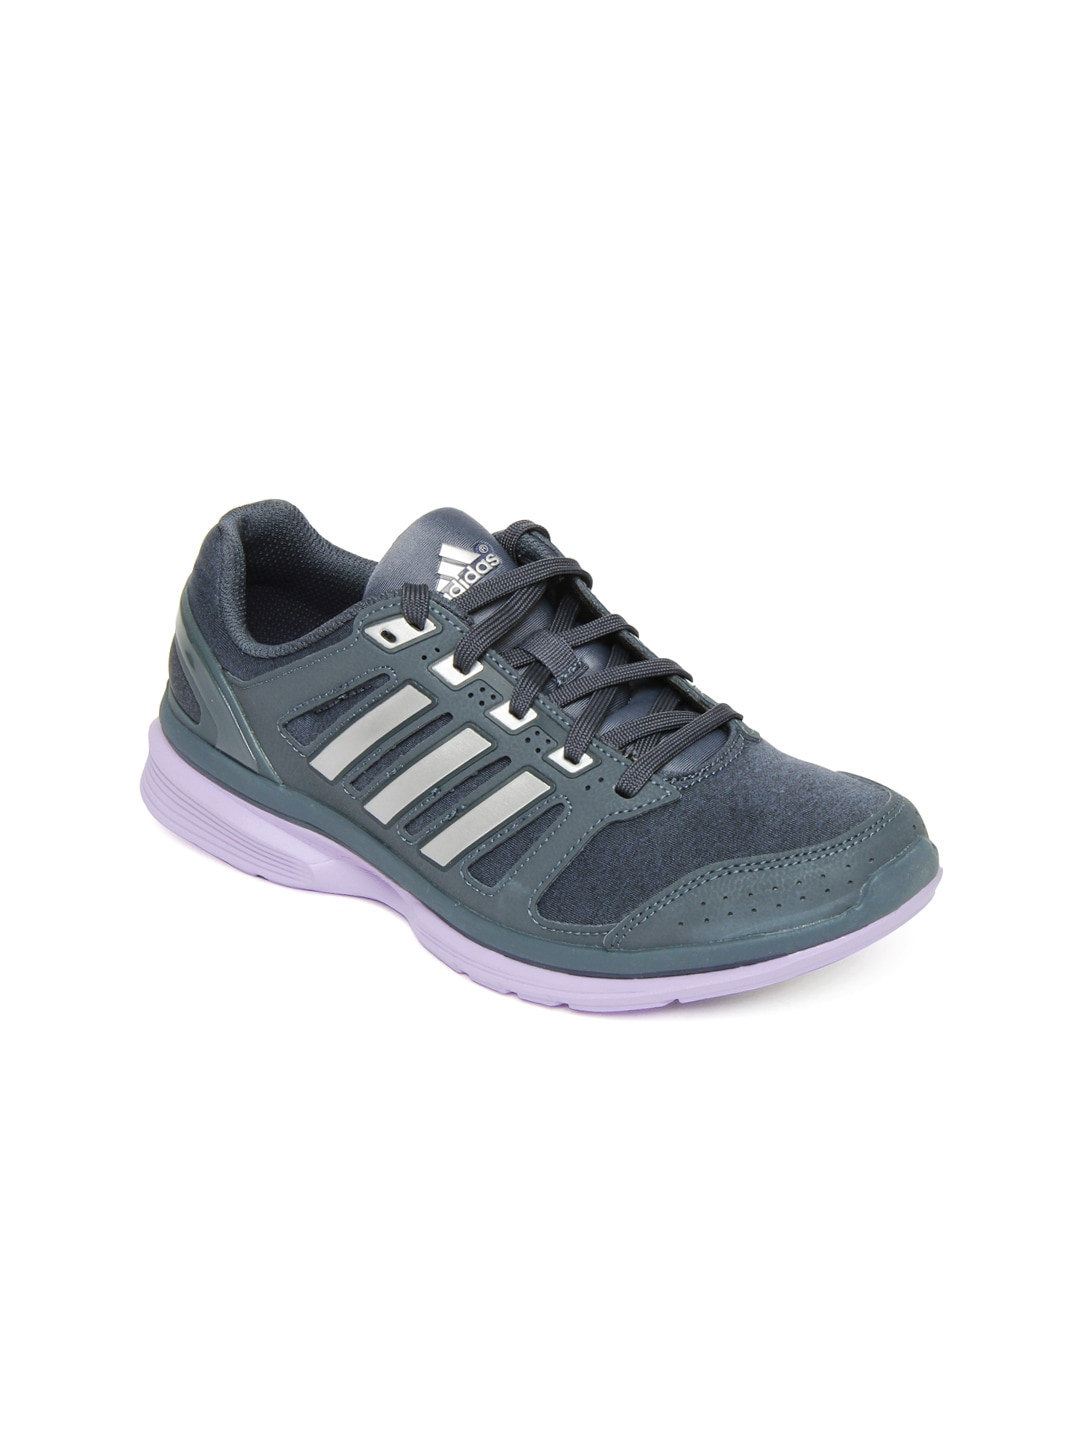 Adidas Adidas Women Grey Epic Elite Sports Shoes